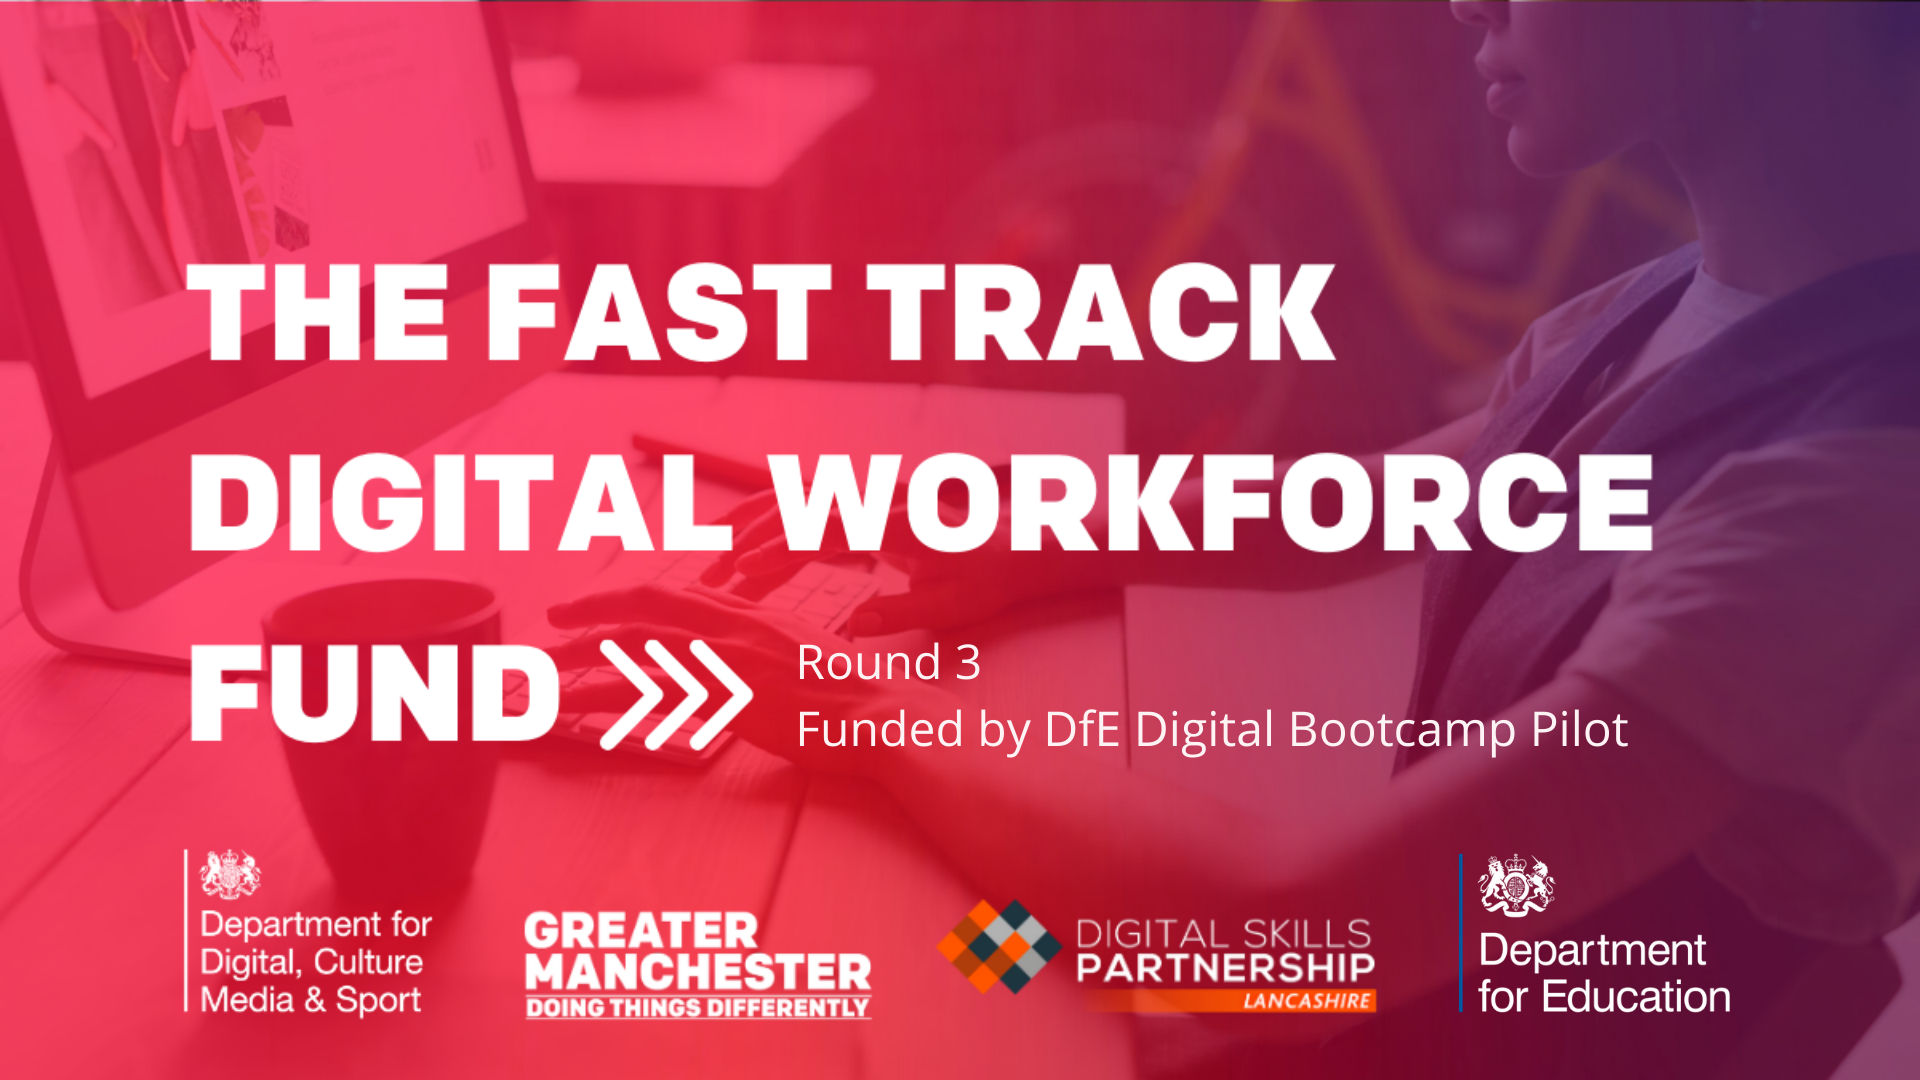 The fast track digital workforce fund. Round three. Funded by the Department for Education Digital Bootcamp Pilot.